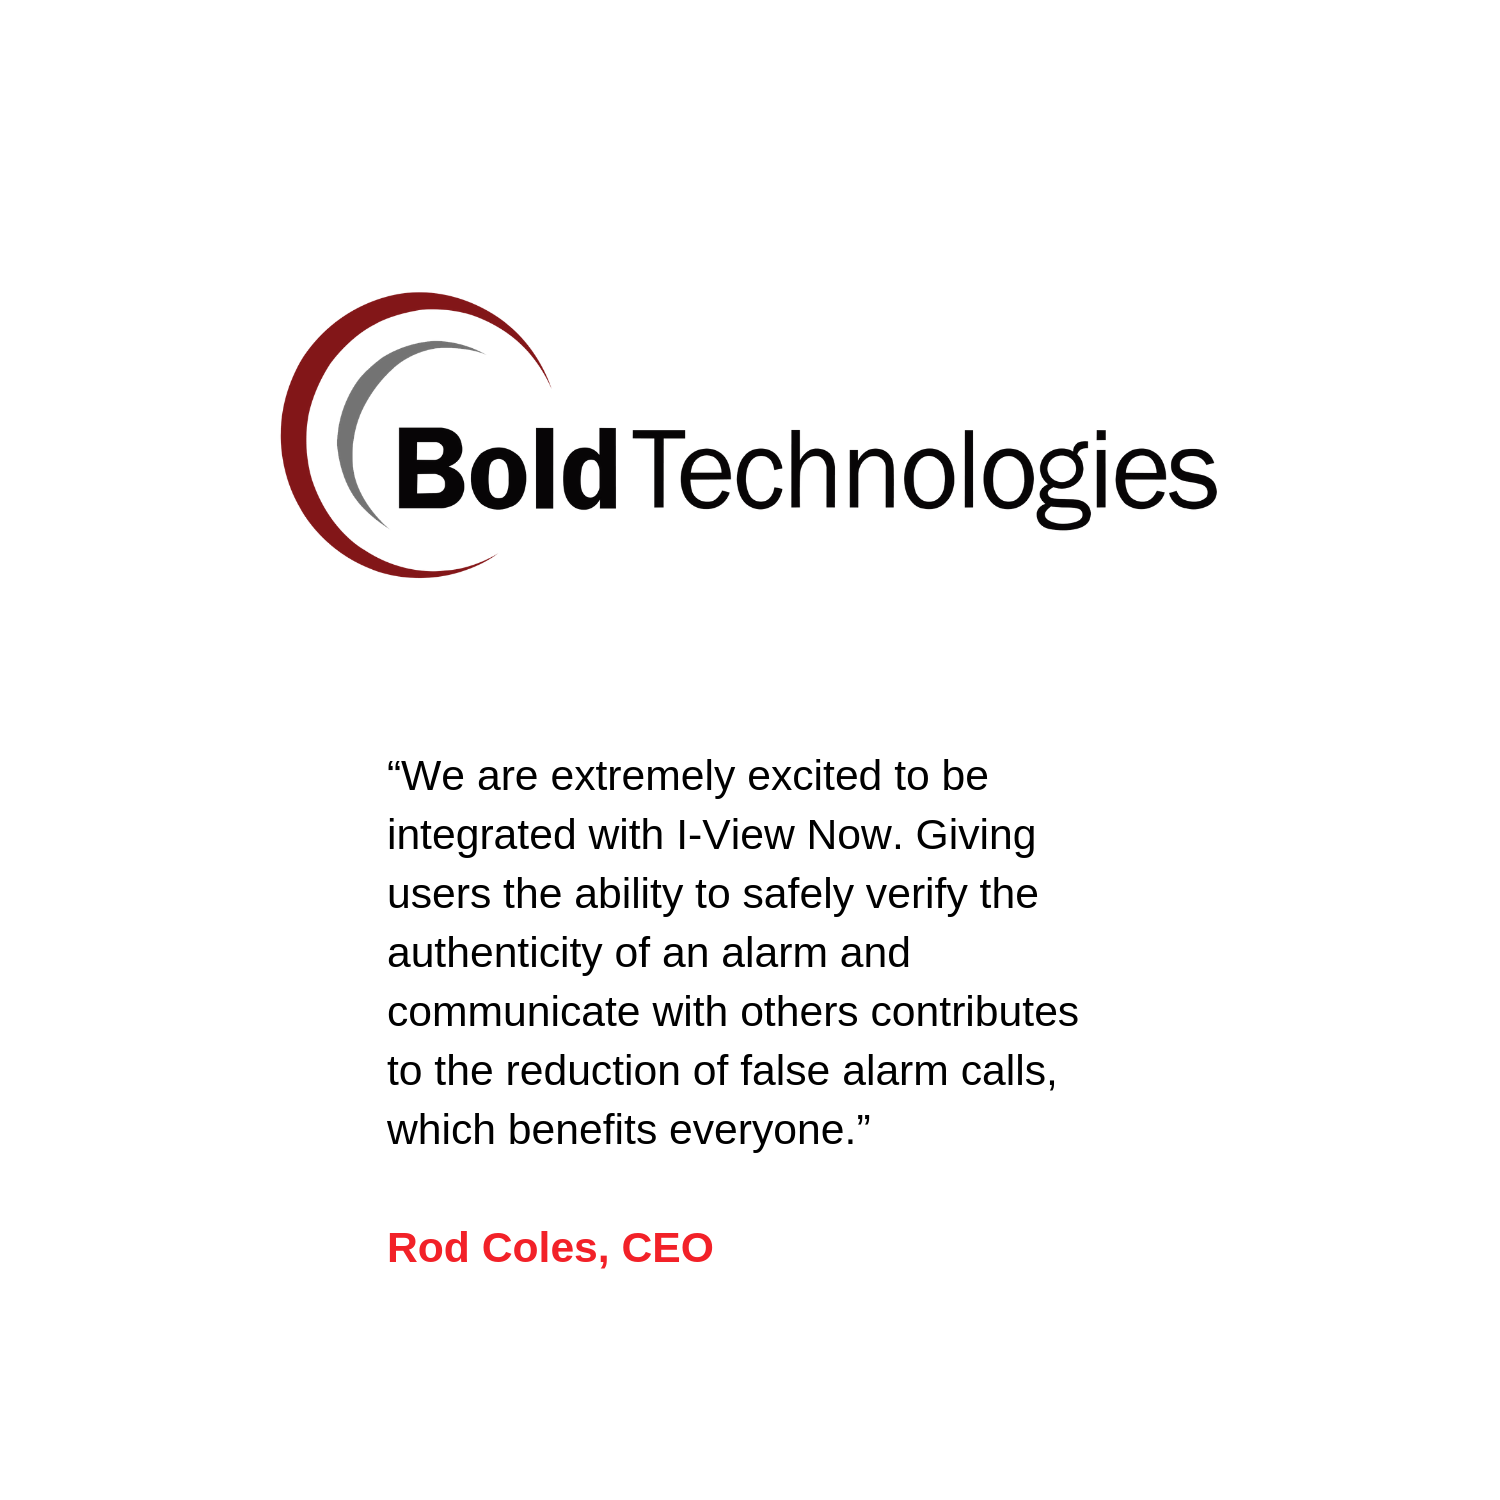 I-View Now - Bold Technologies quote 1500x1500.png